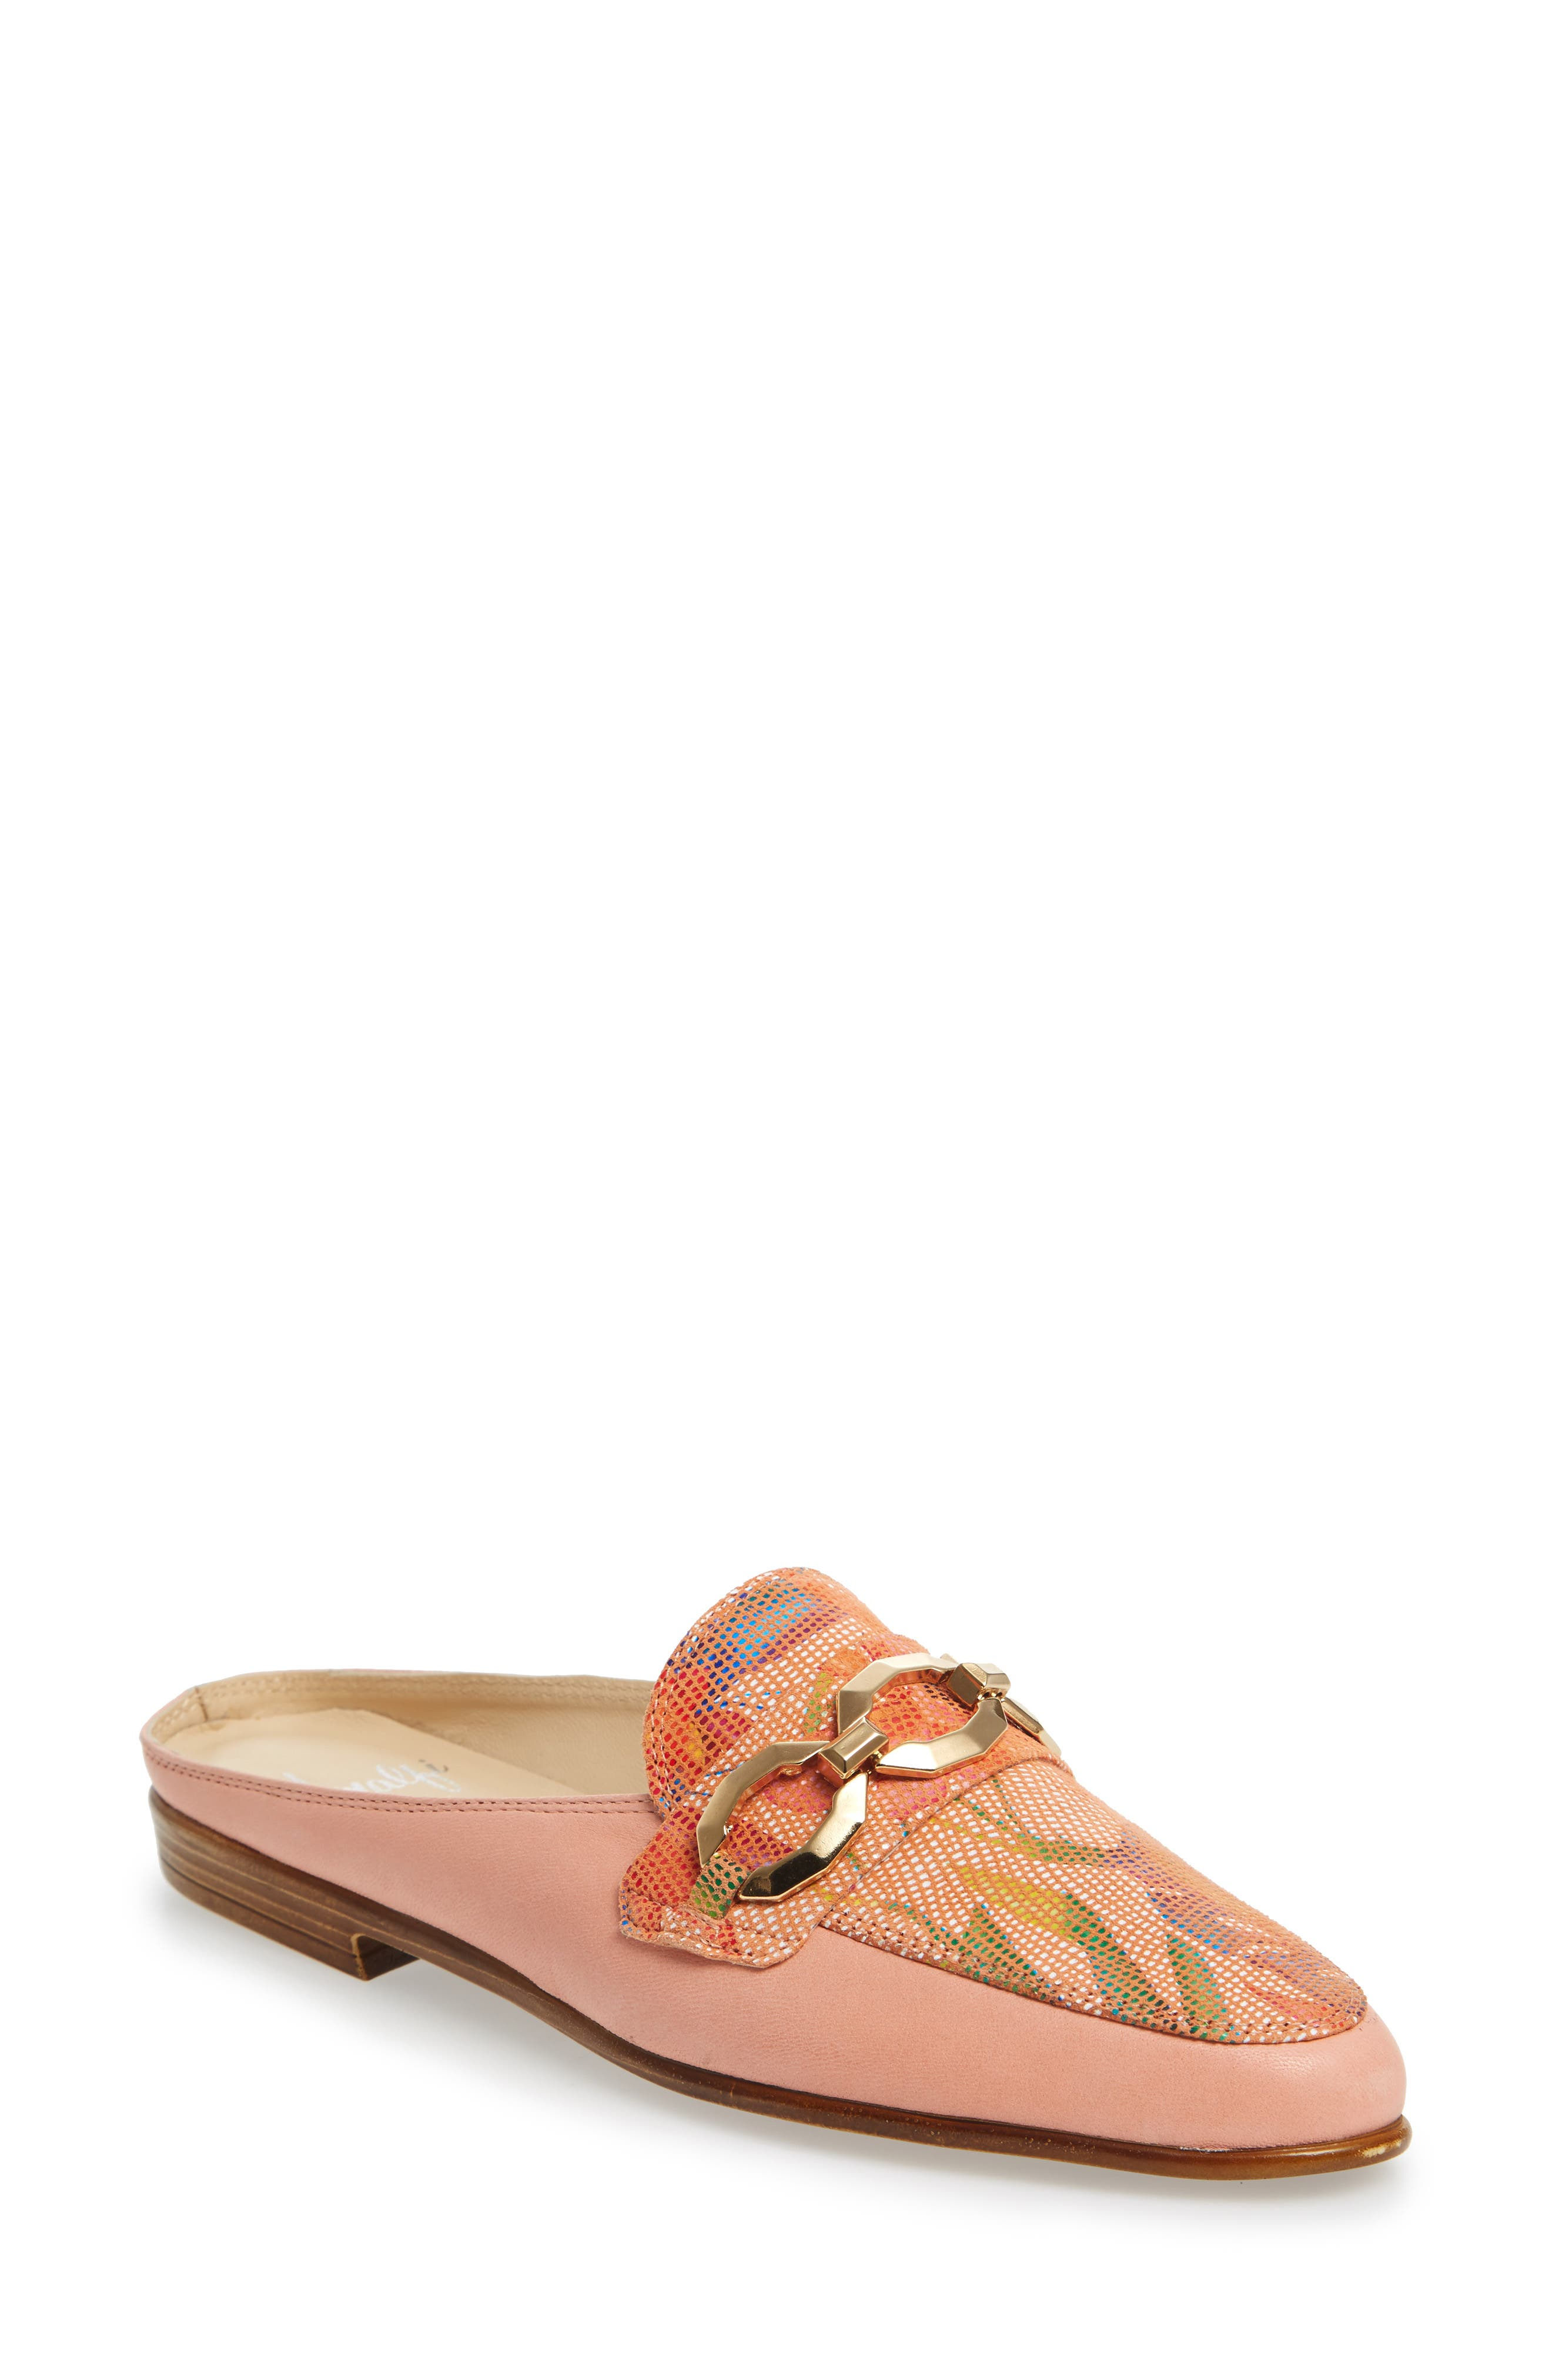 Almafi by Rangoni Otranto Loafer Slide,                         Main,                         color, Rose Leather